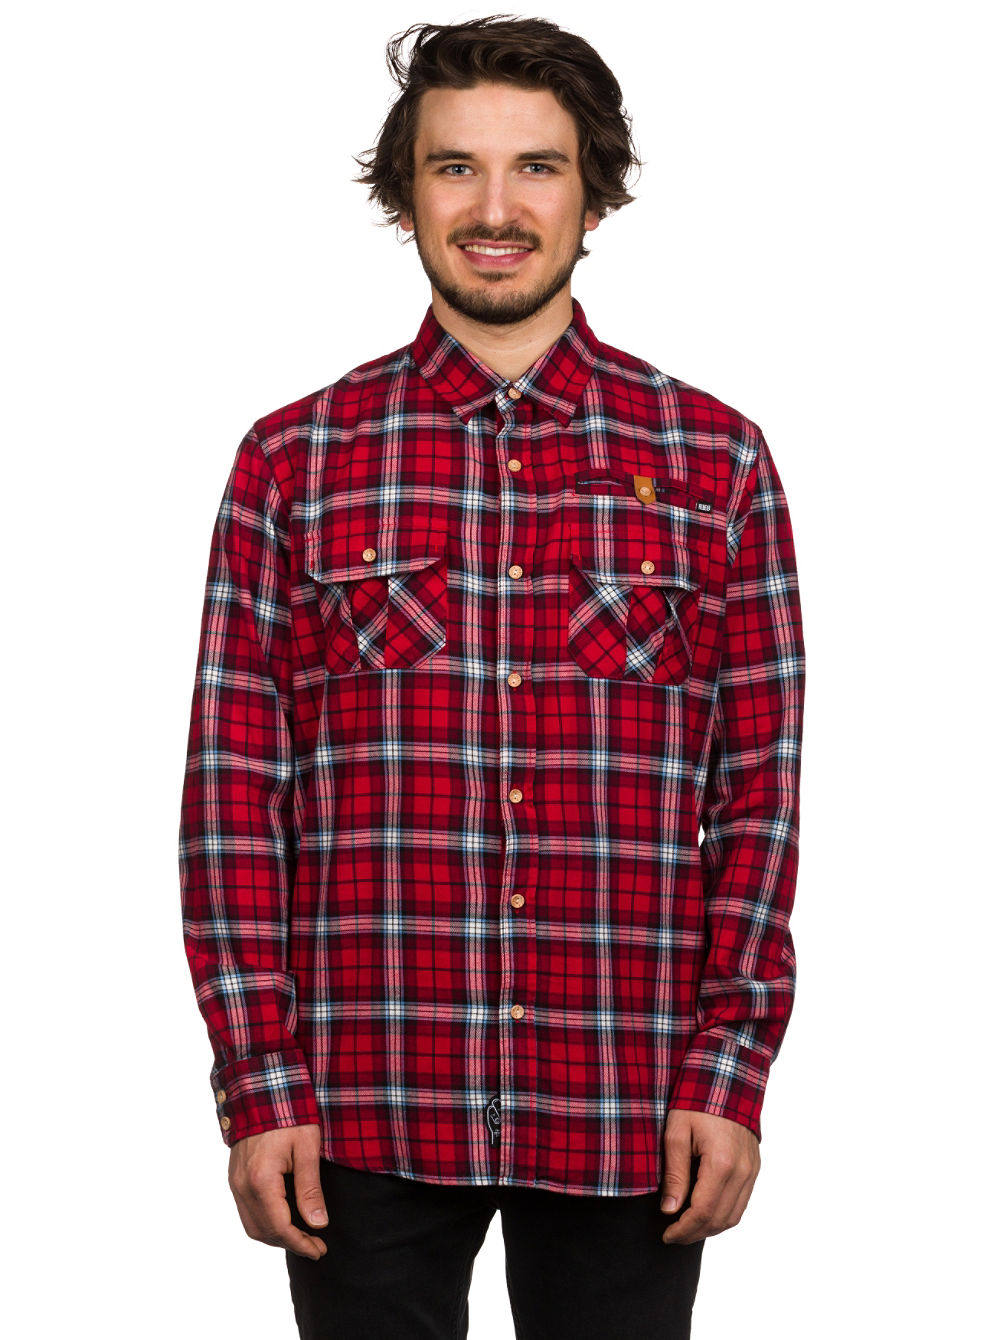 Such a great quality shirt (really nice flannel material!) but the sizing is way off. I used their size chart measurements in the picture of product and with reviews from other buyers to buy .